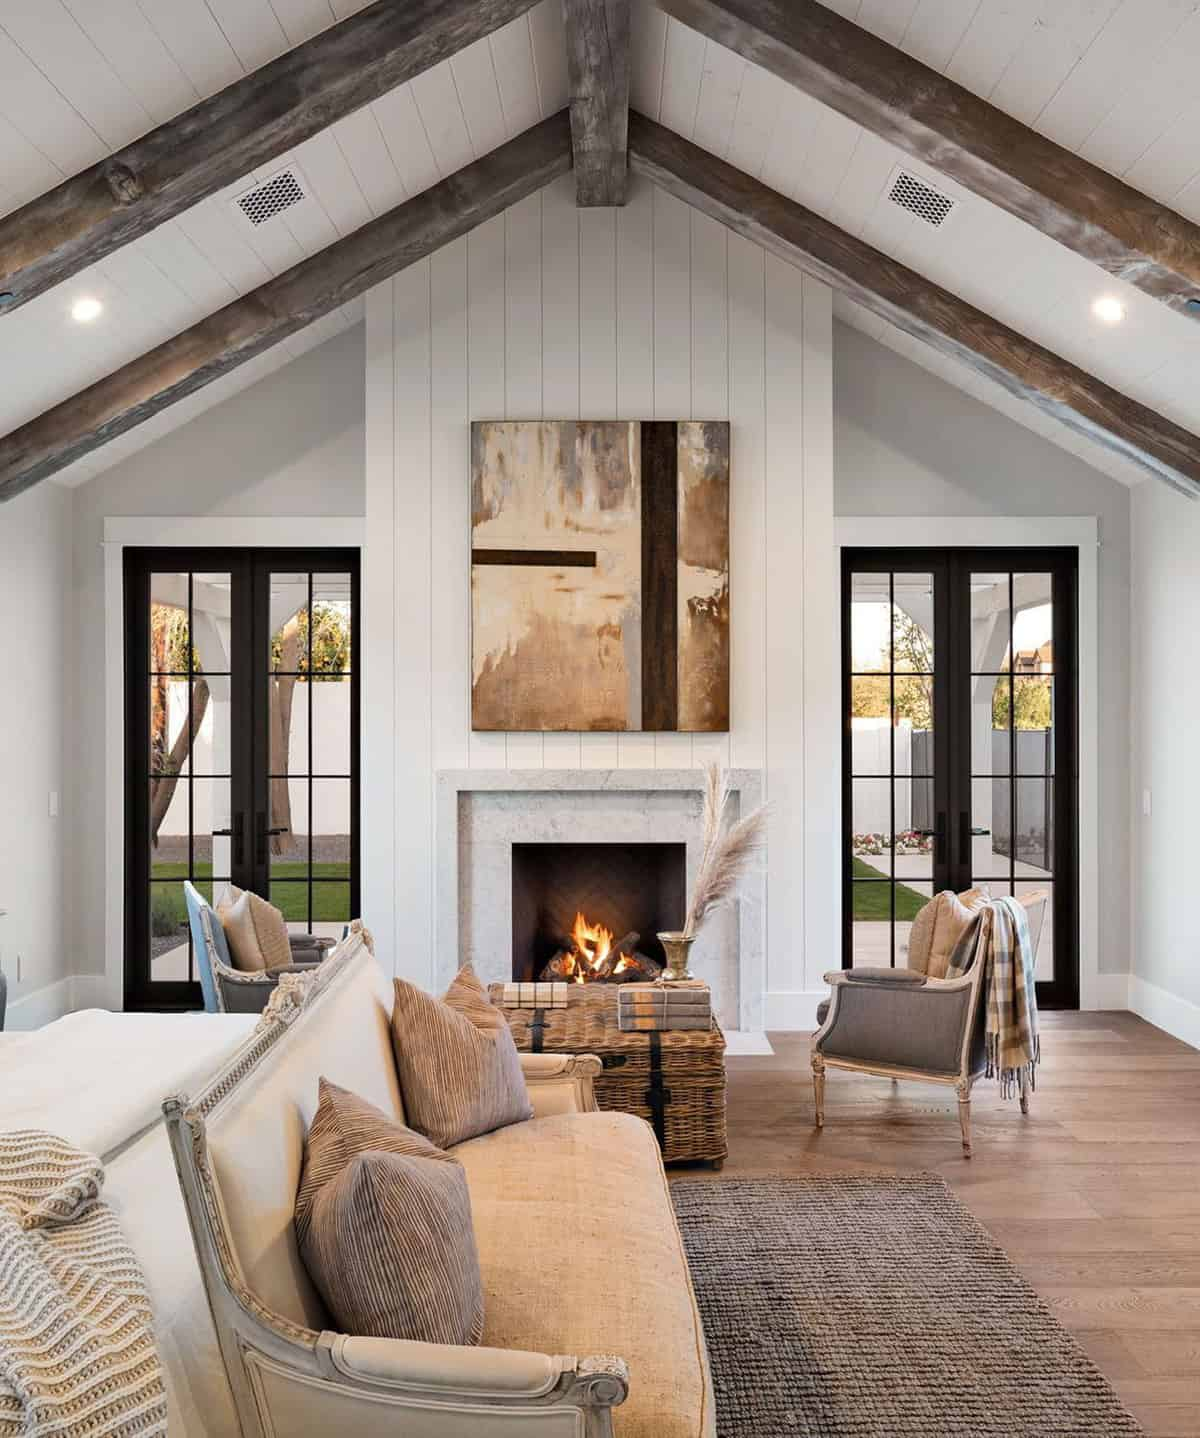 15 Most Gorgeous and Inviting Bedroom Fireplace Design Ideas Ever